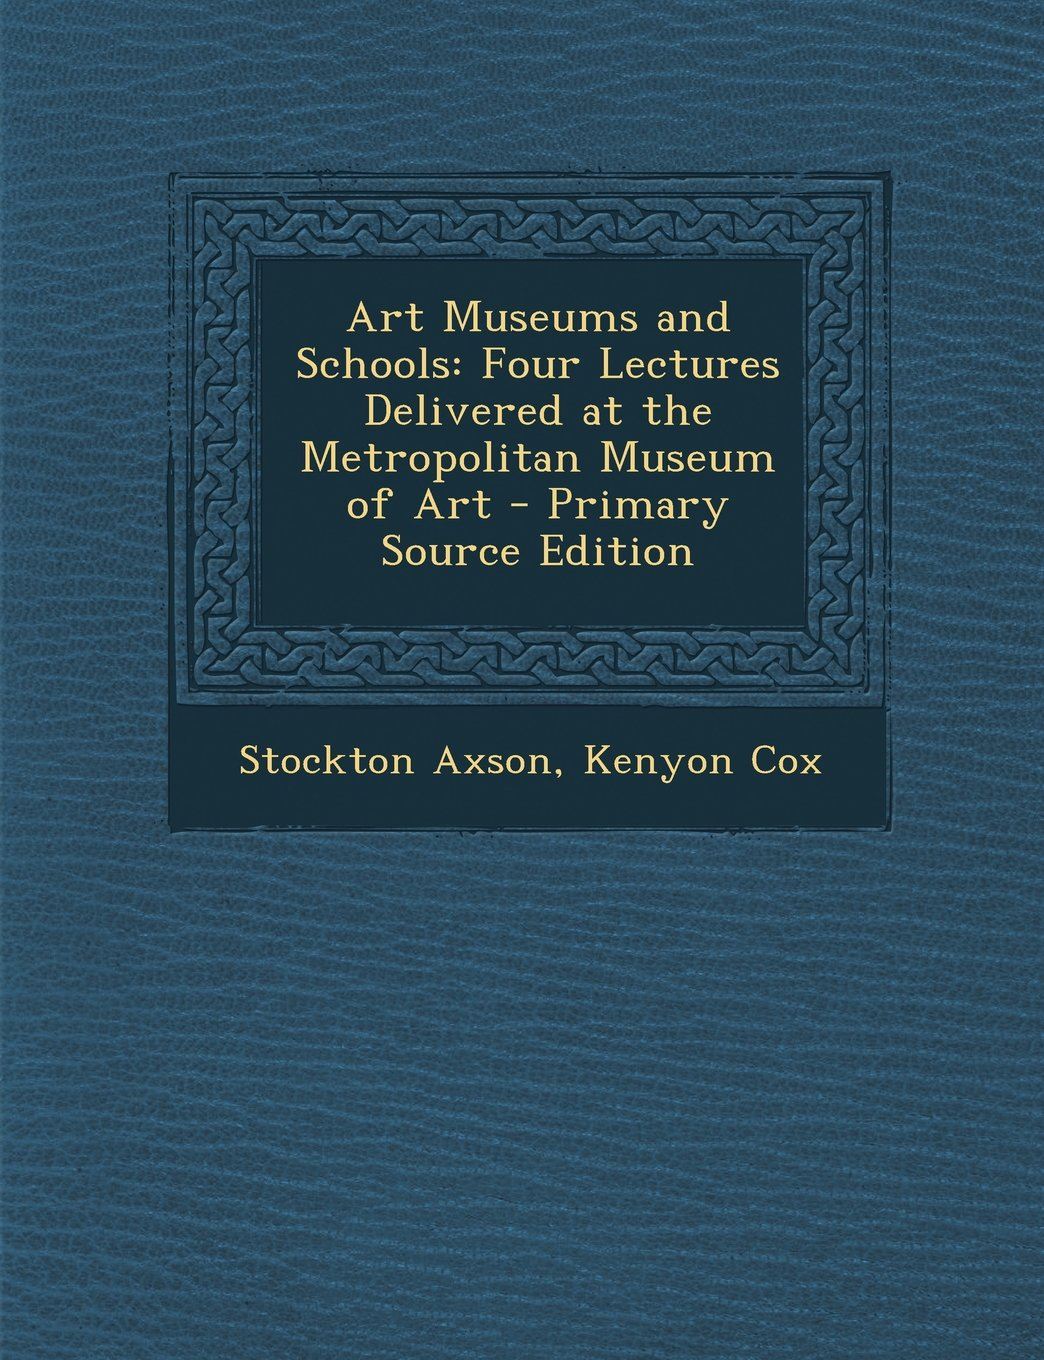 Art Museums and Schools: Four Lectures Delivered at the Metropolitan Museum of Art - Primary Source Edition PDF